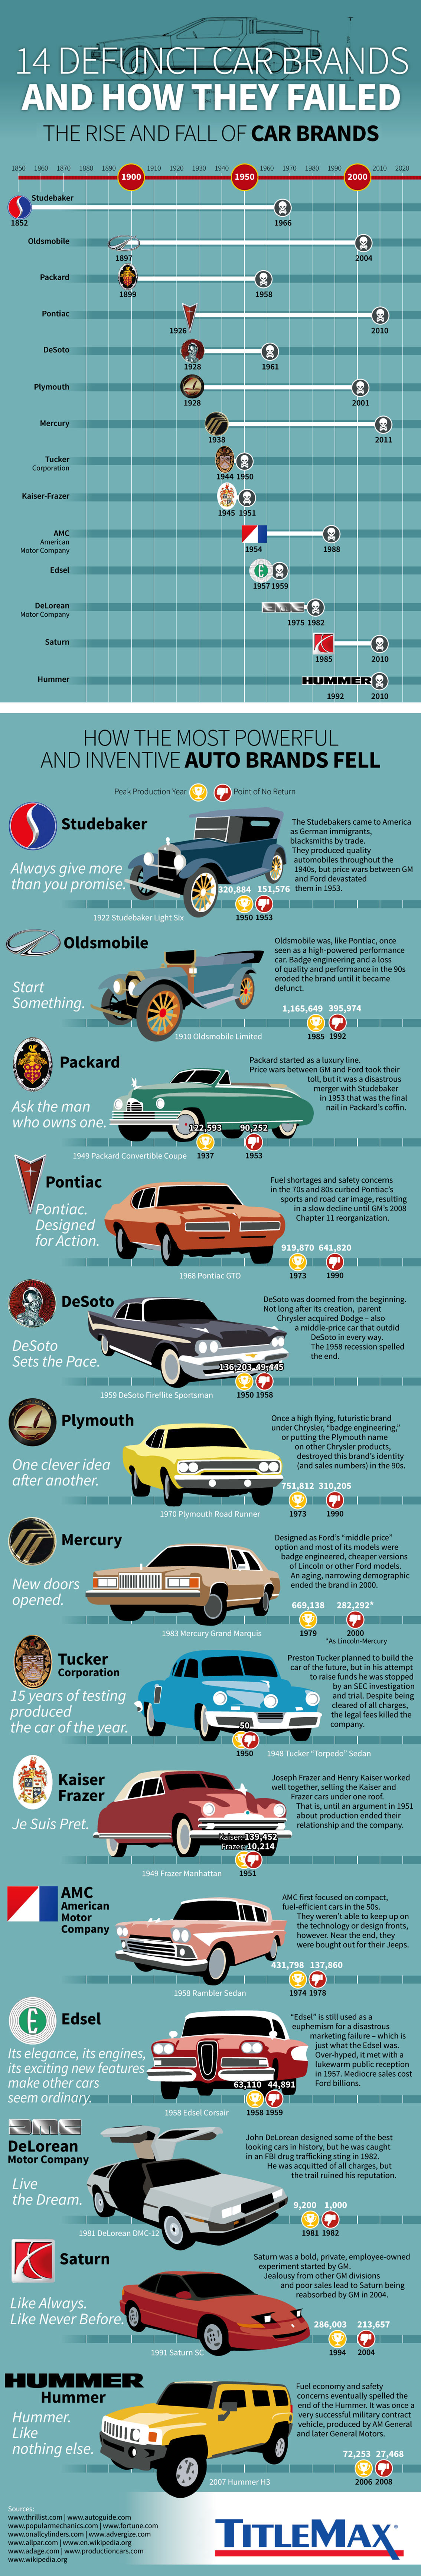 14 Discontinued Car Brands and How They Failed Infographic